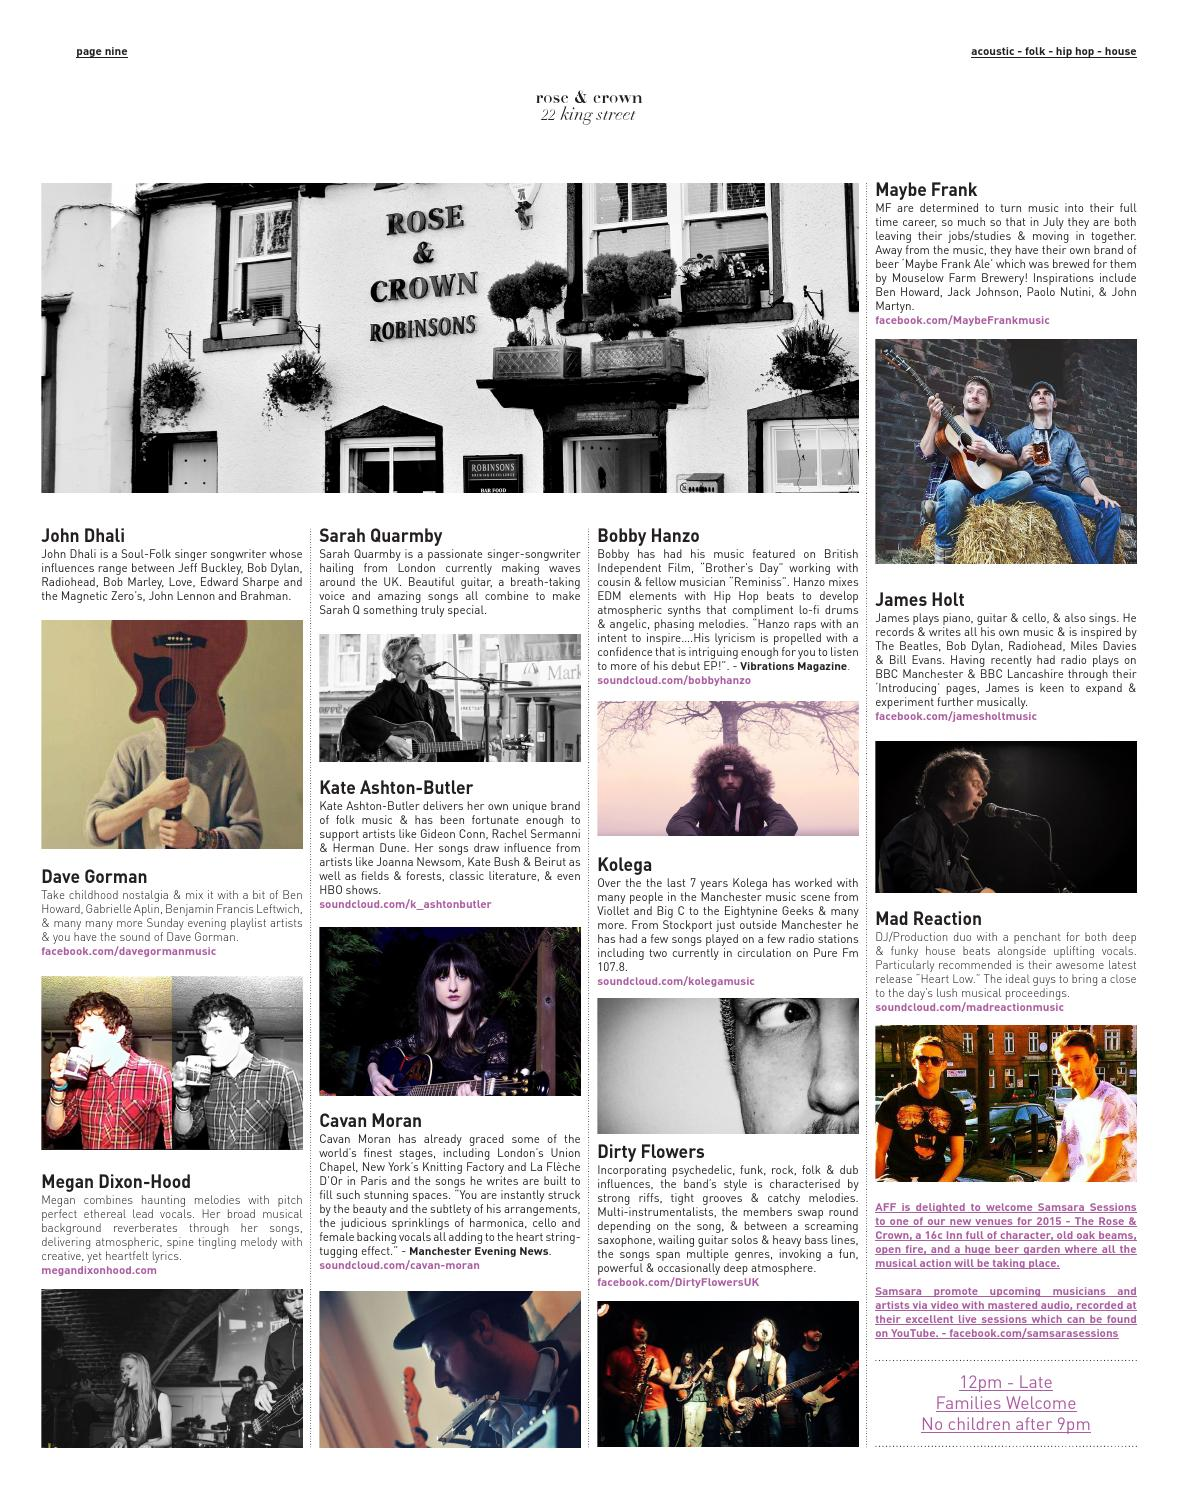 Another fine fest 2015 - June 20th - Ulverston by Another